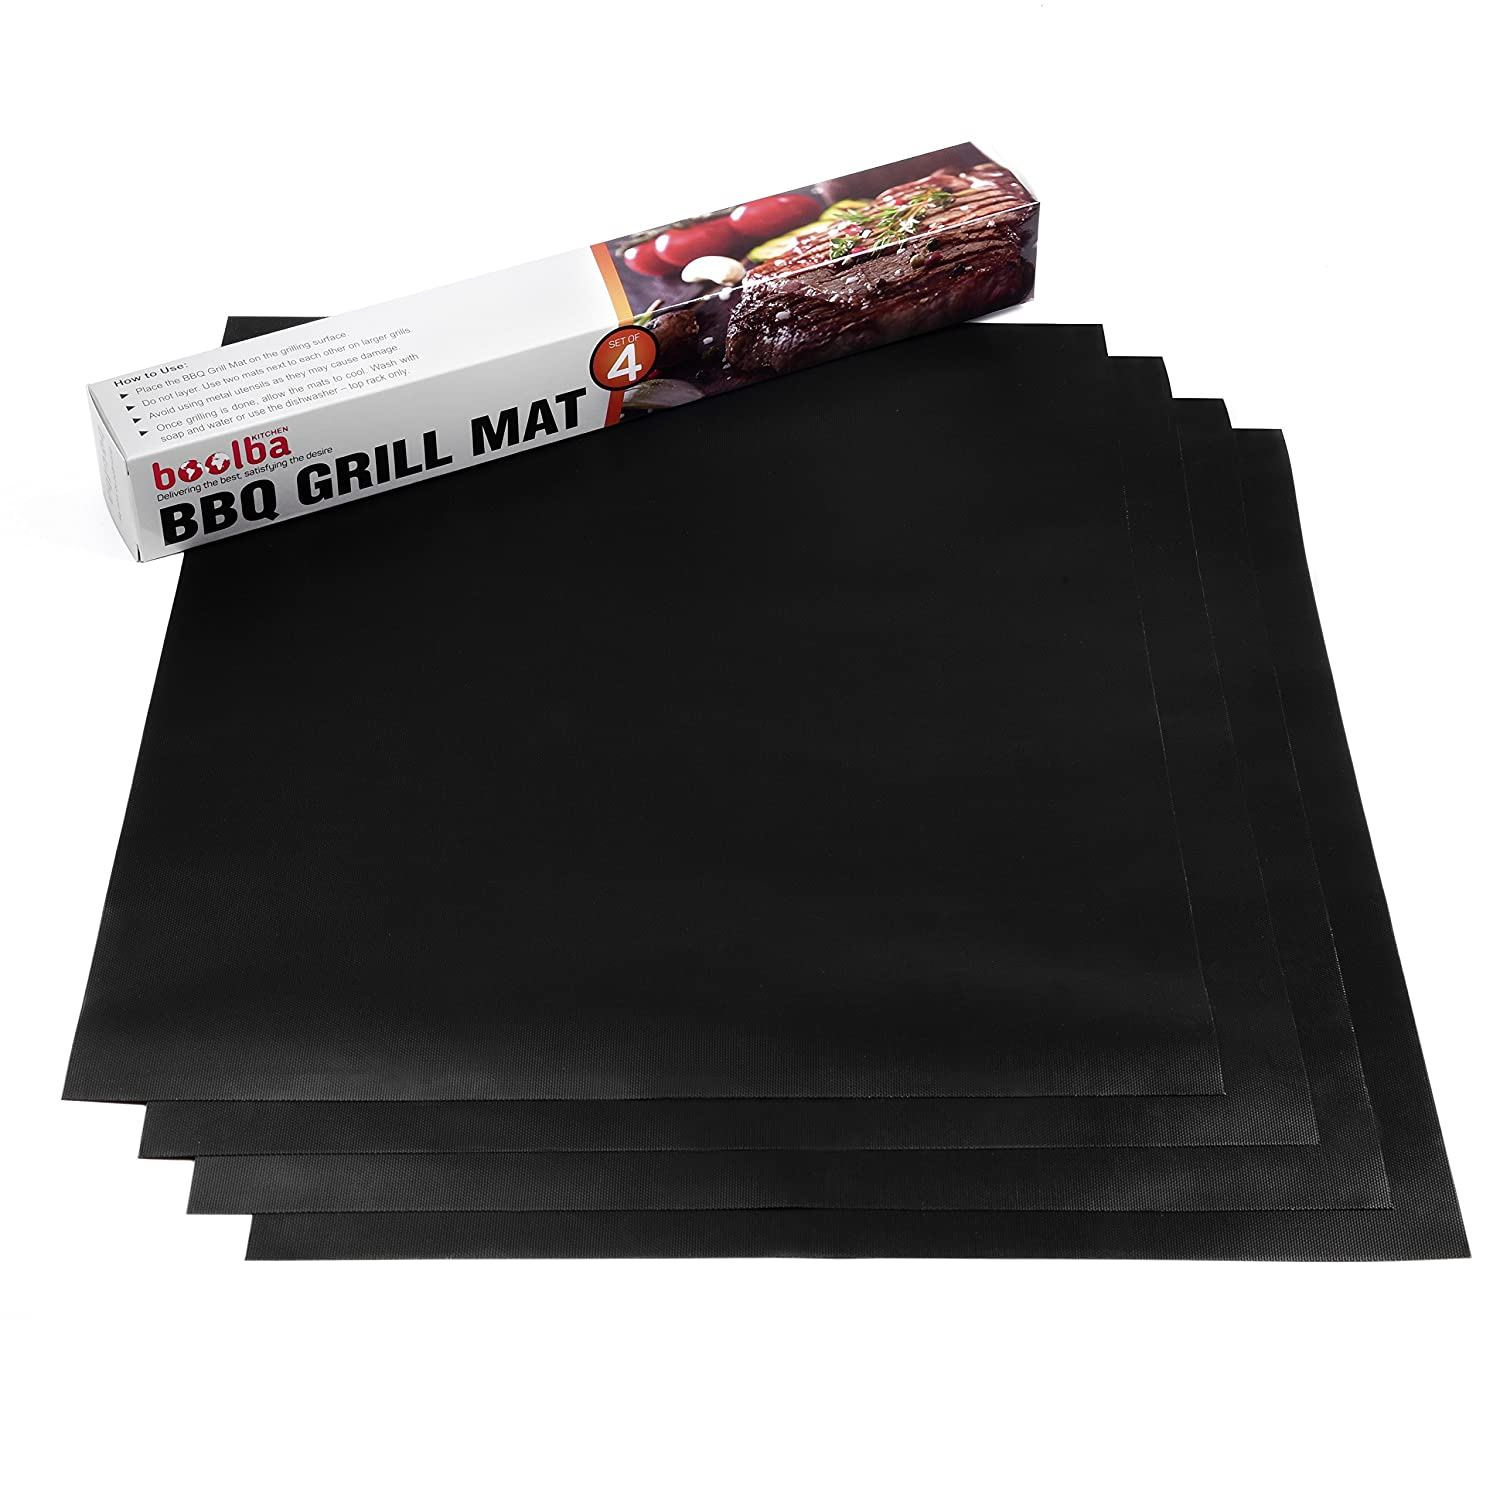 "Boolba Kitchen BBQ Grill Mat (Set of 4) | Great Baking Oven Liner | 100% Non Stick Reusable Easy To Clean | Perfect For Cooking Gas Electric Charcoal Grill Stove or Oven | Size 15.75"" x 13"""